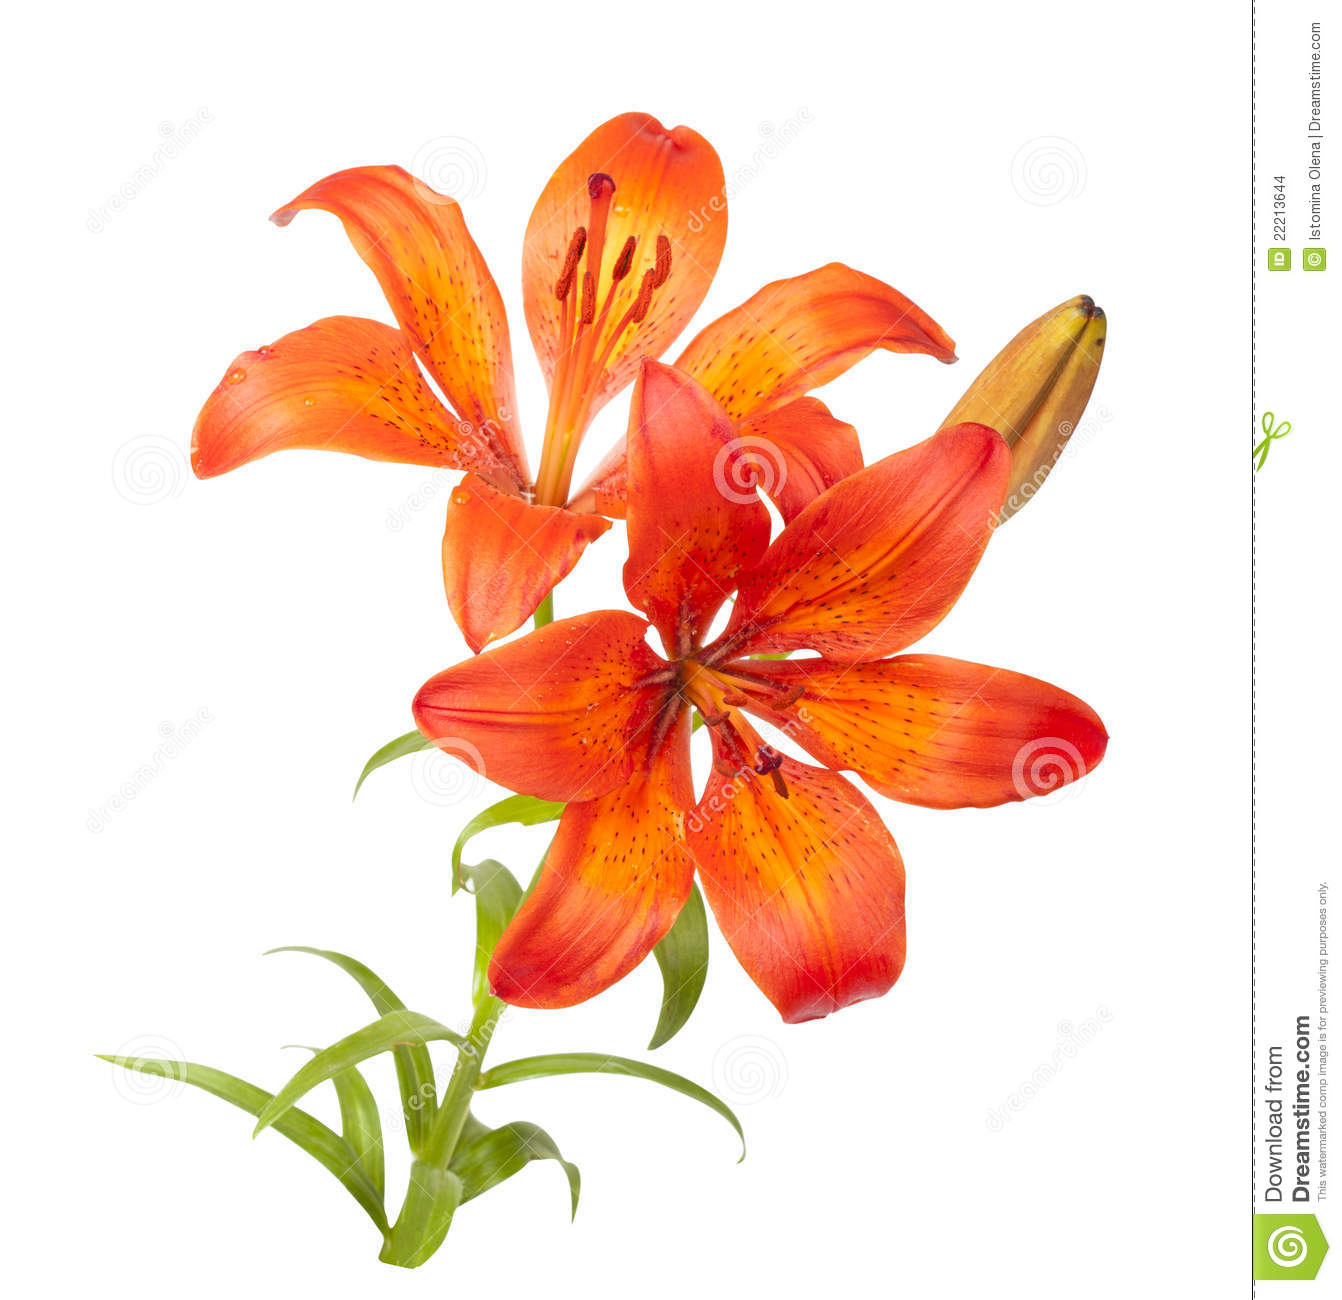 Tiger Lily clipart #12, Download drawings